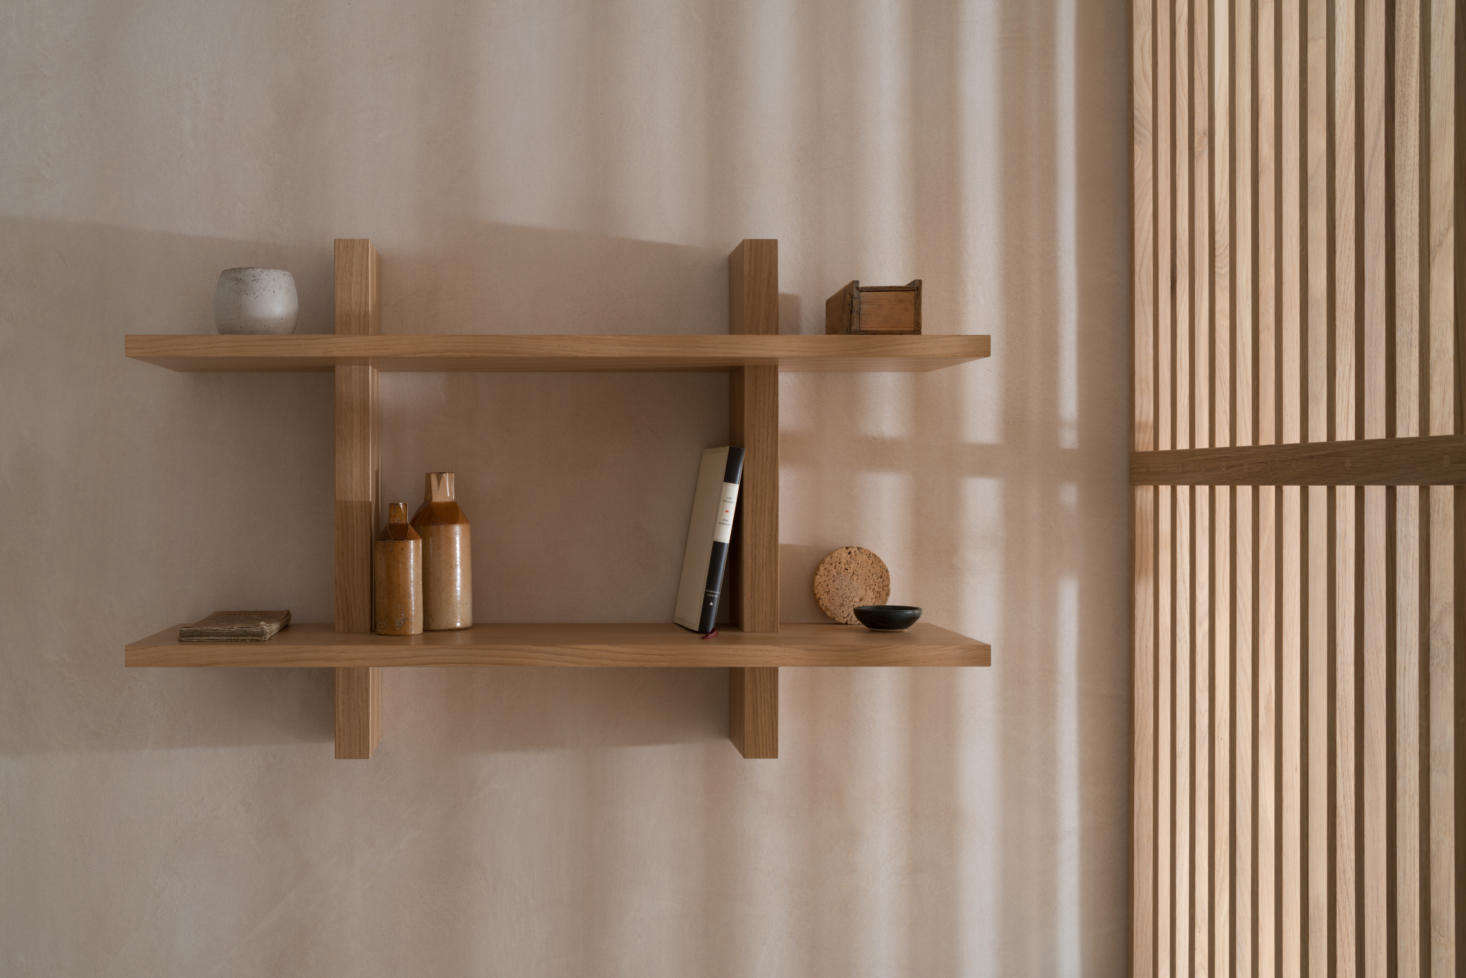 Oak shelving in the bedroom.